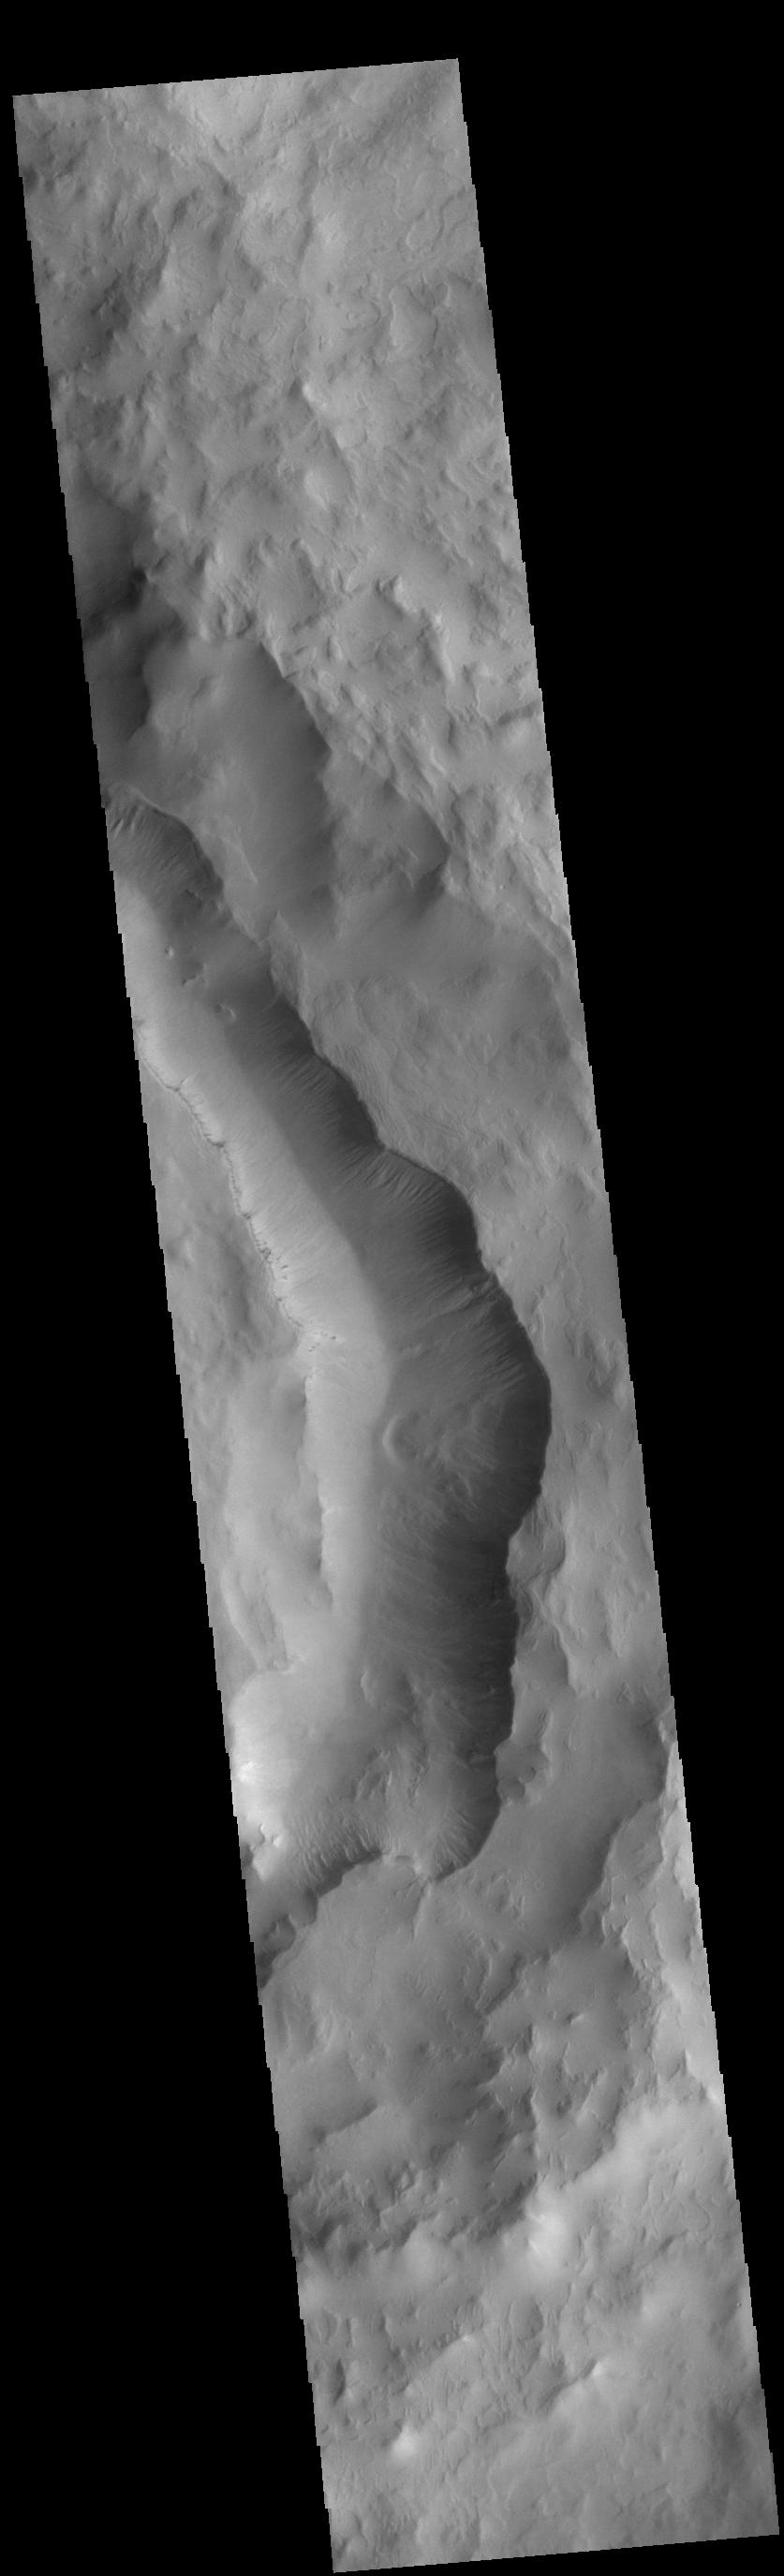 This image from NASAs Mars Odyssey shows part of the eastern side of Maunder Crater.